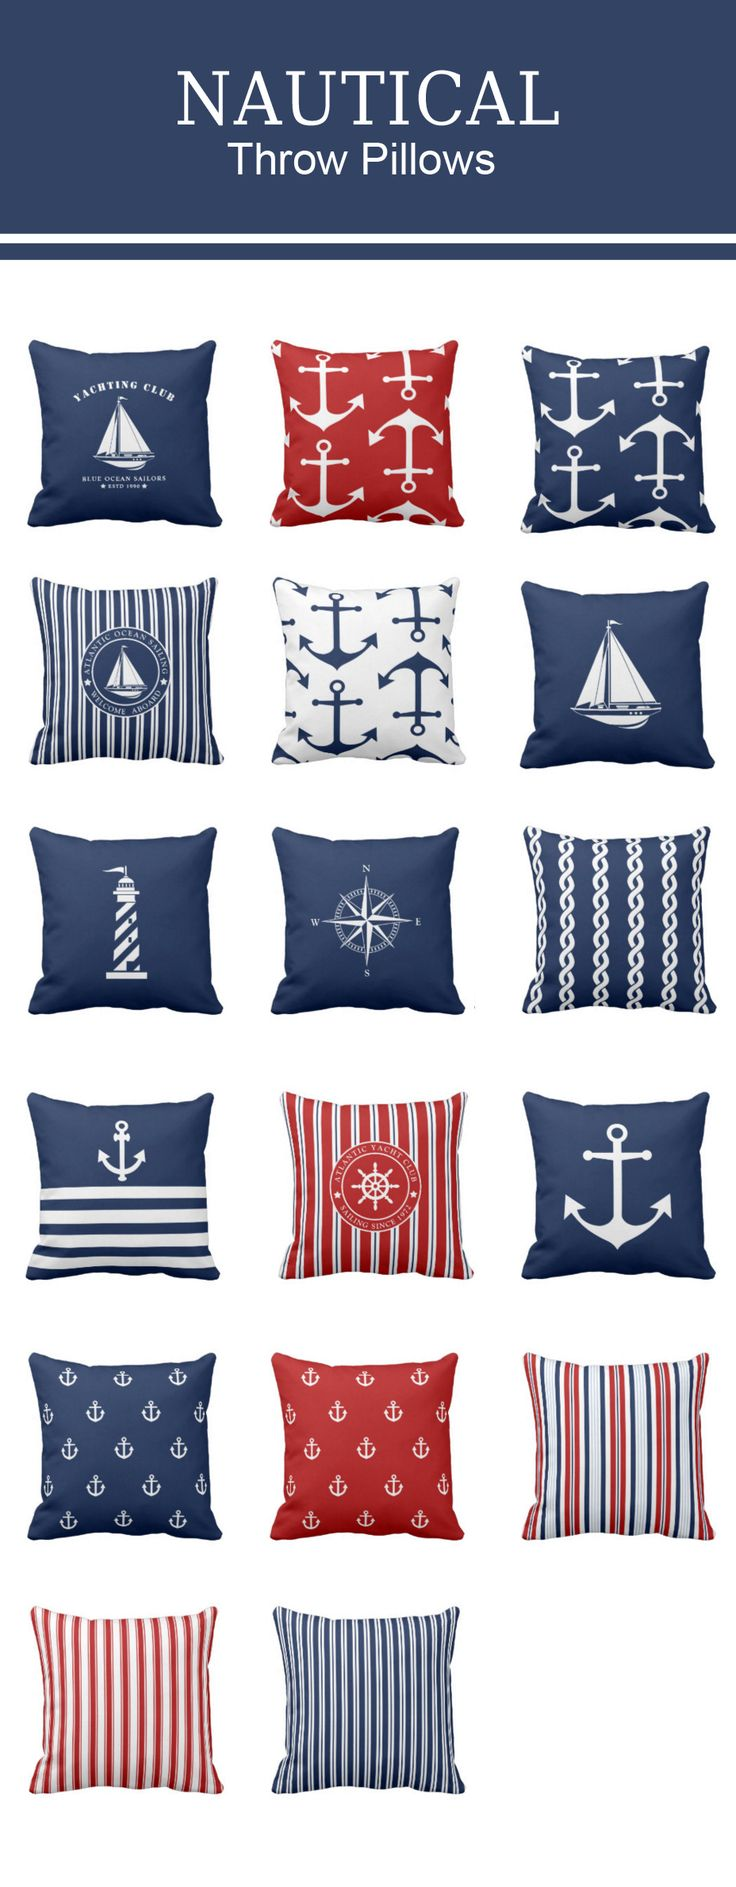 Nautical throw pillows with stripes, anchors, sailing boats, lighthouse - navy blue, white or nautical red. #nautical #pillows #decor #anchor